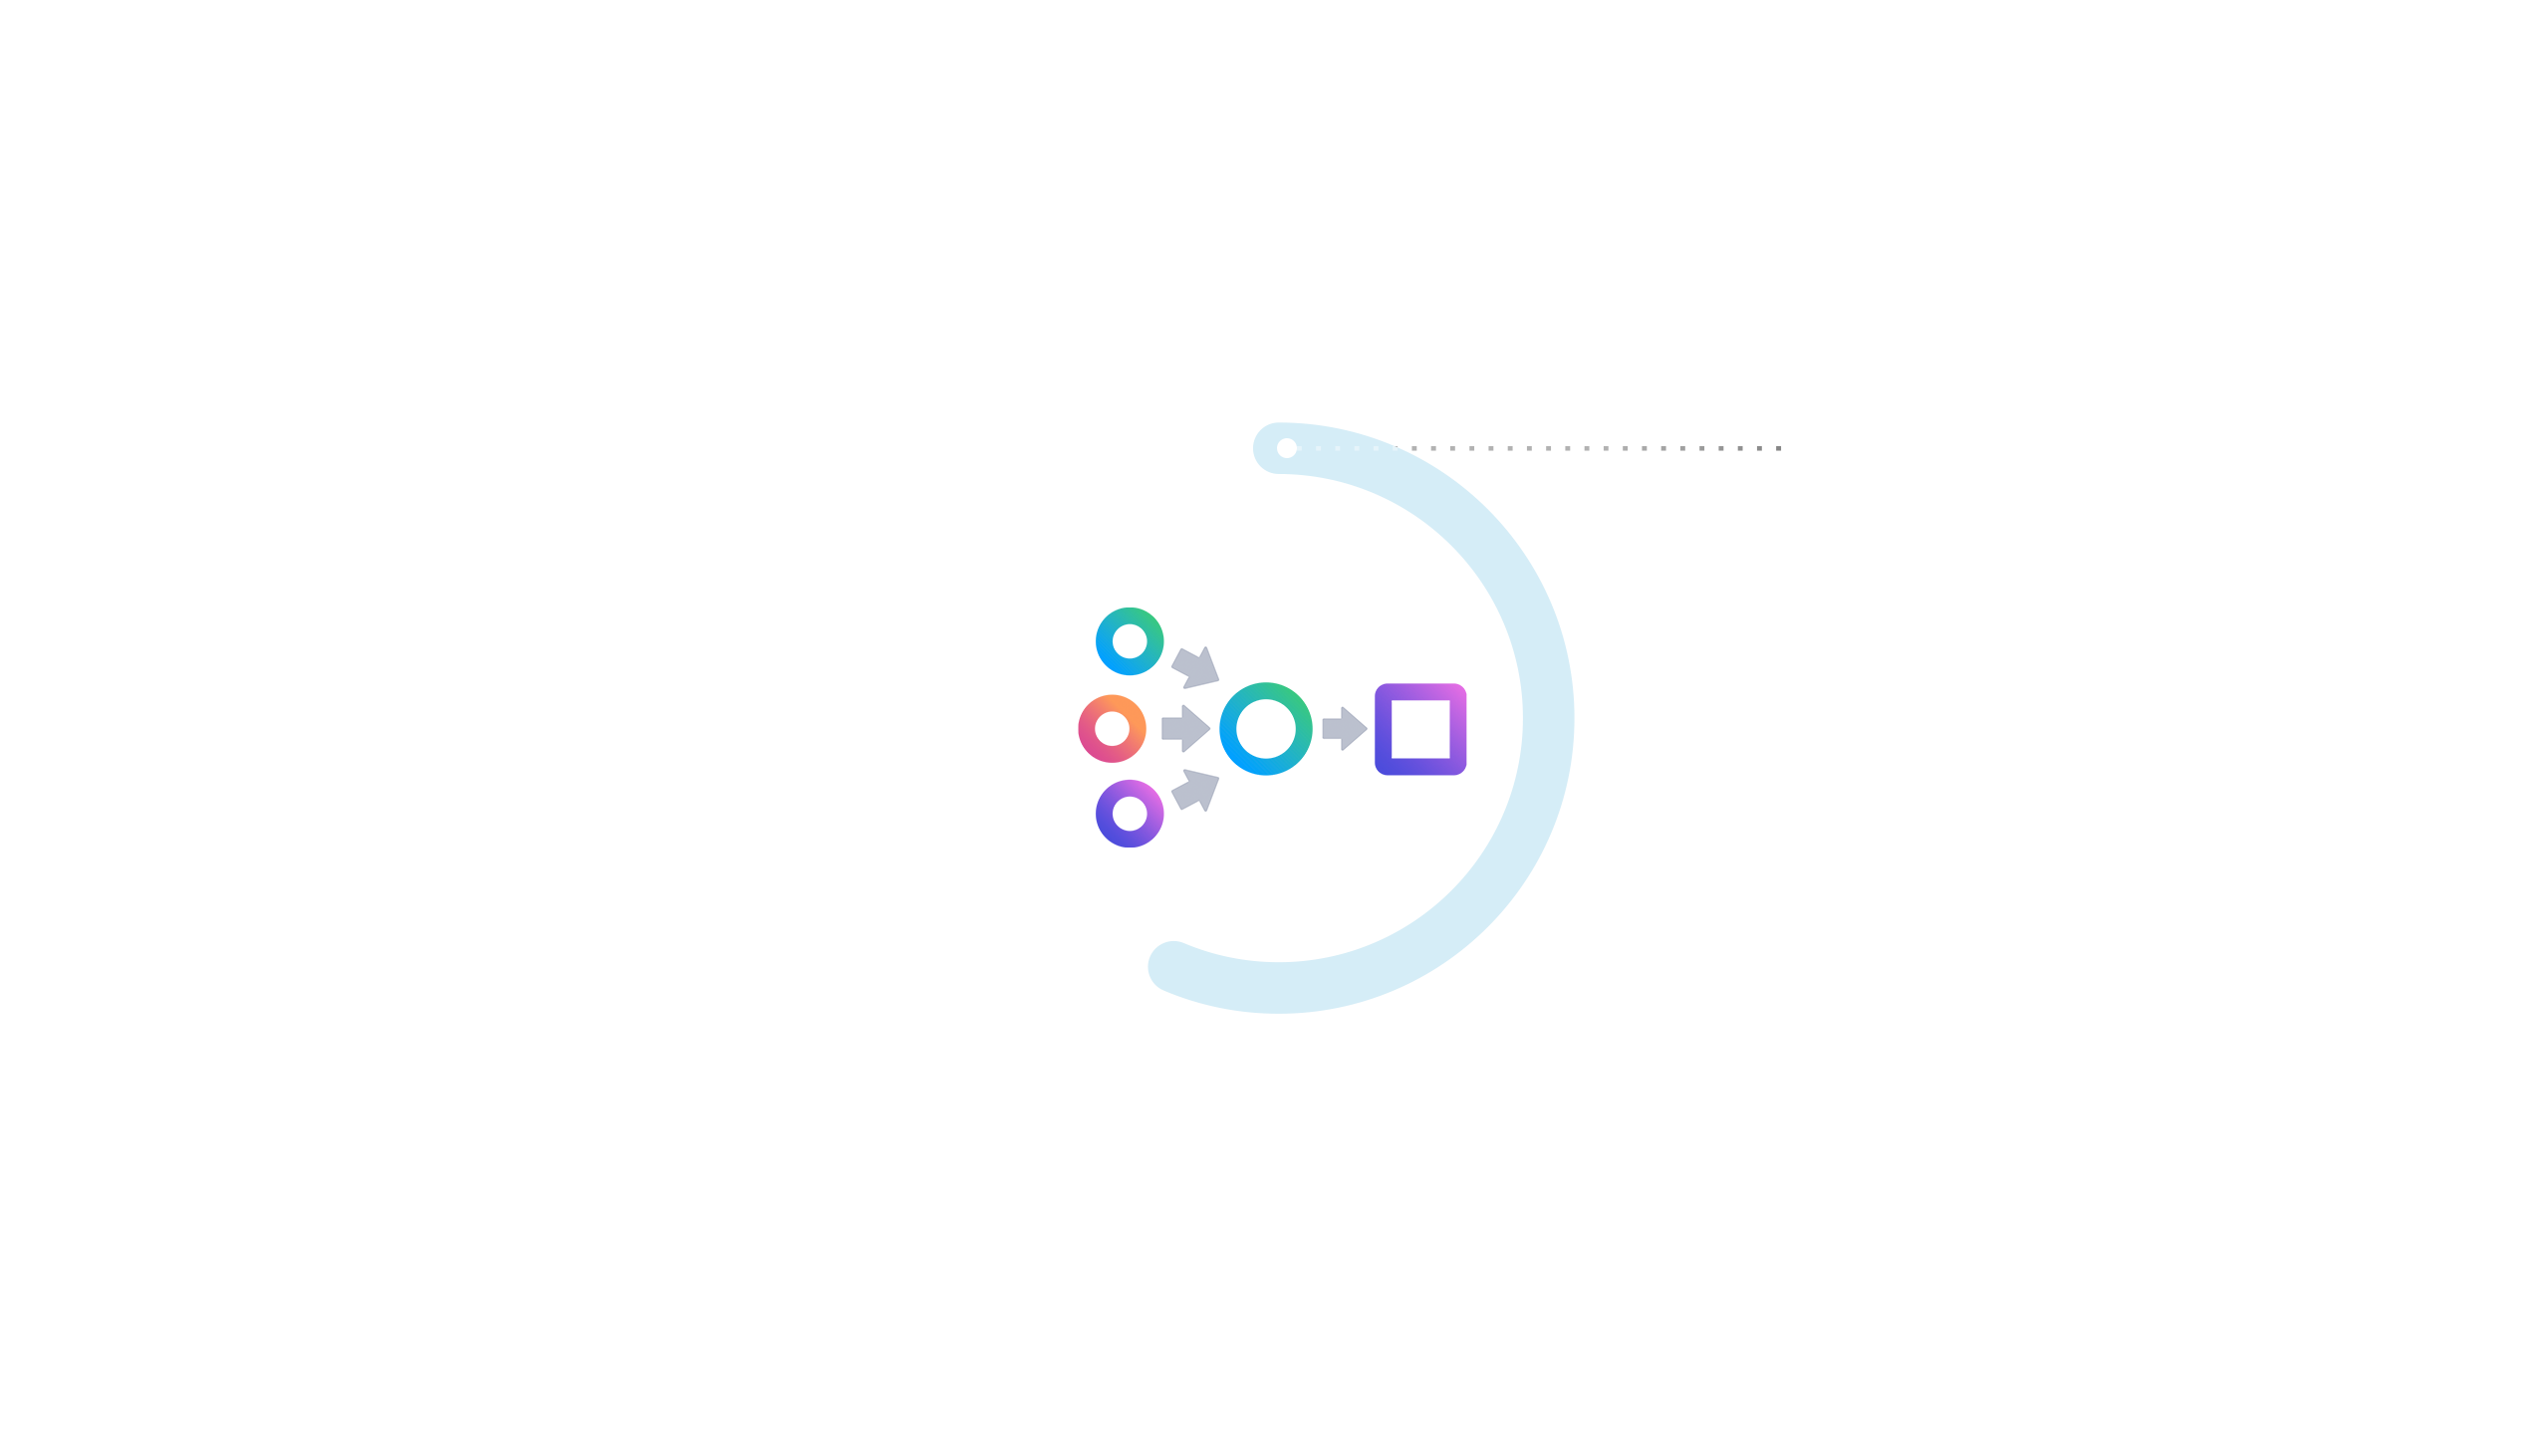 Insight Methodology: Combining proprietary algorithms, AI, and data science to improve business and health outcomes.